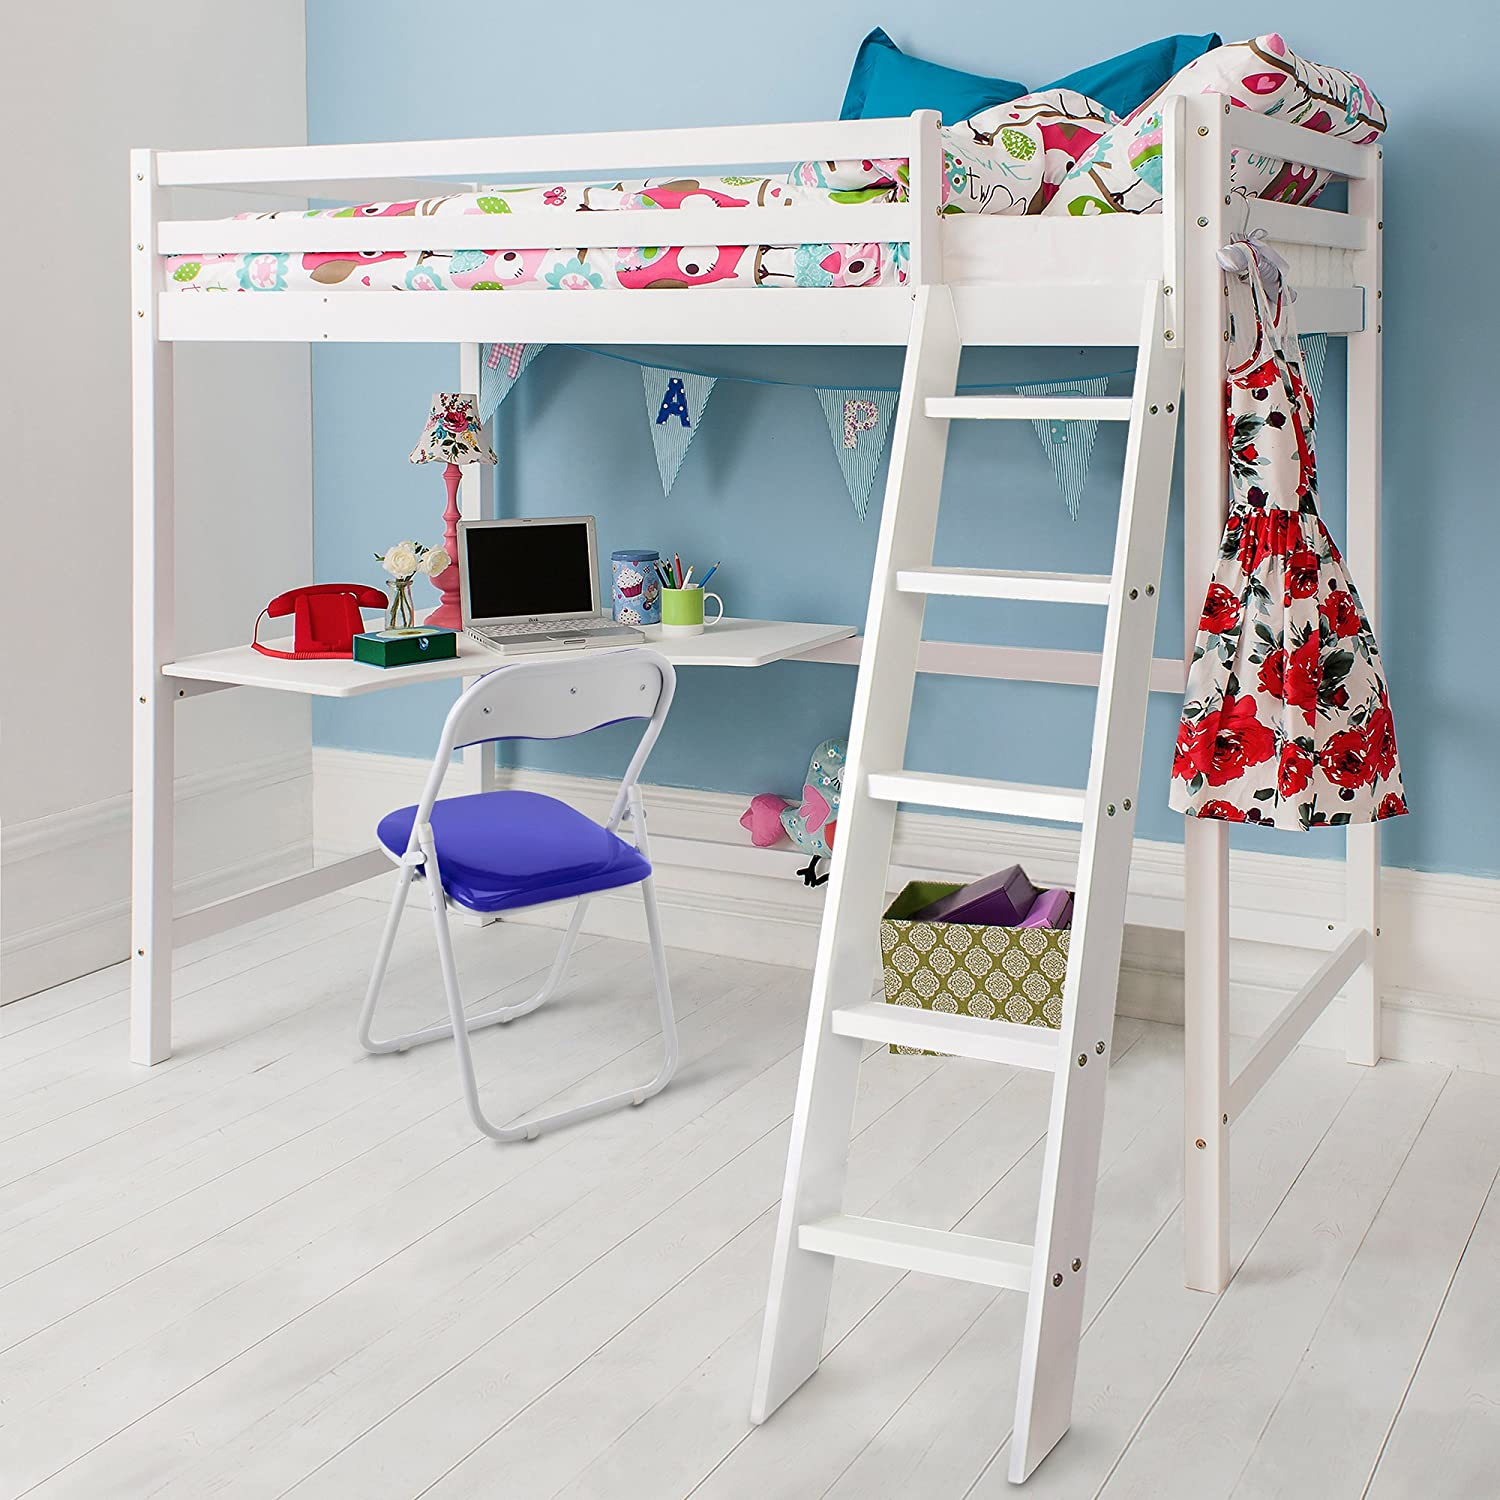 cabin bed high sleeeper with desk in white  bunk bed   high sleeper w high sleeper bed with black futon desk and 2 shelves  3ft single      rh   amazon co uk